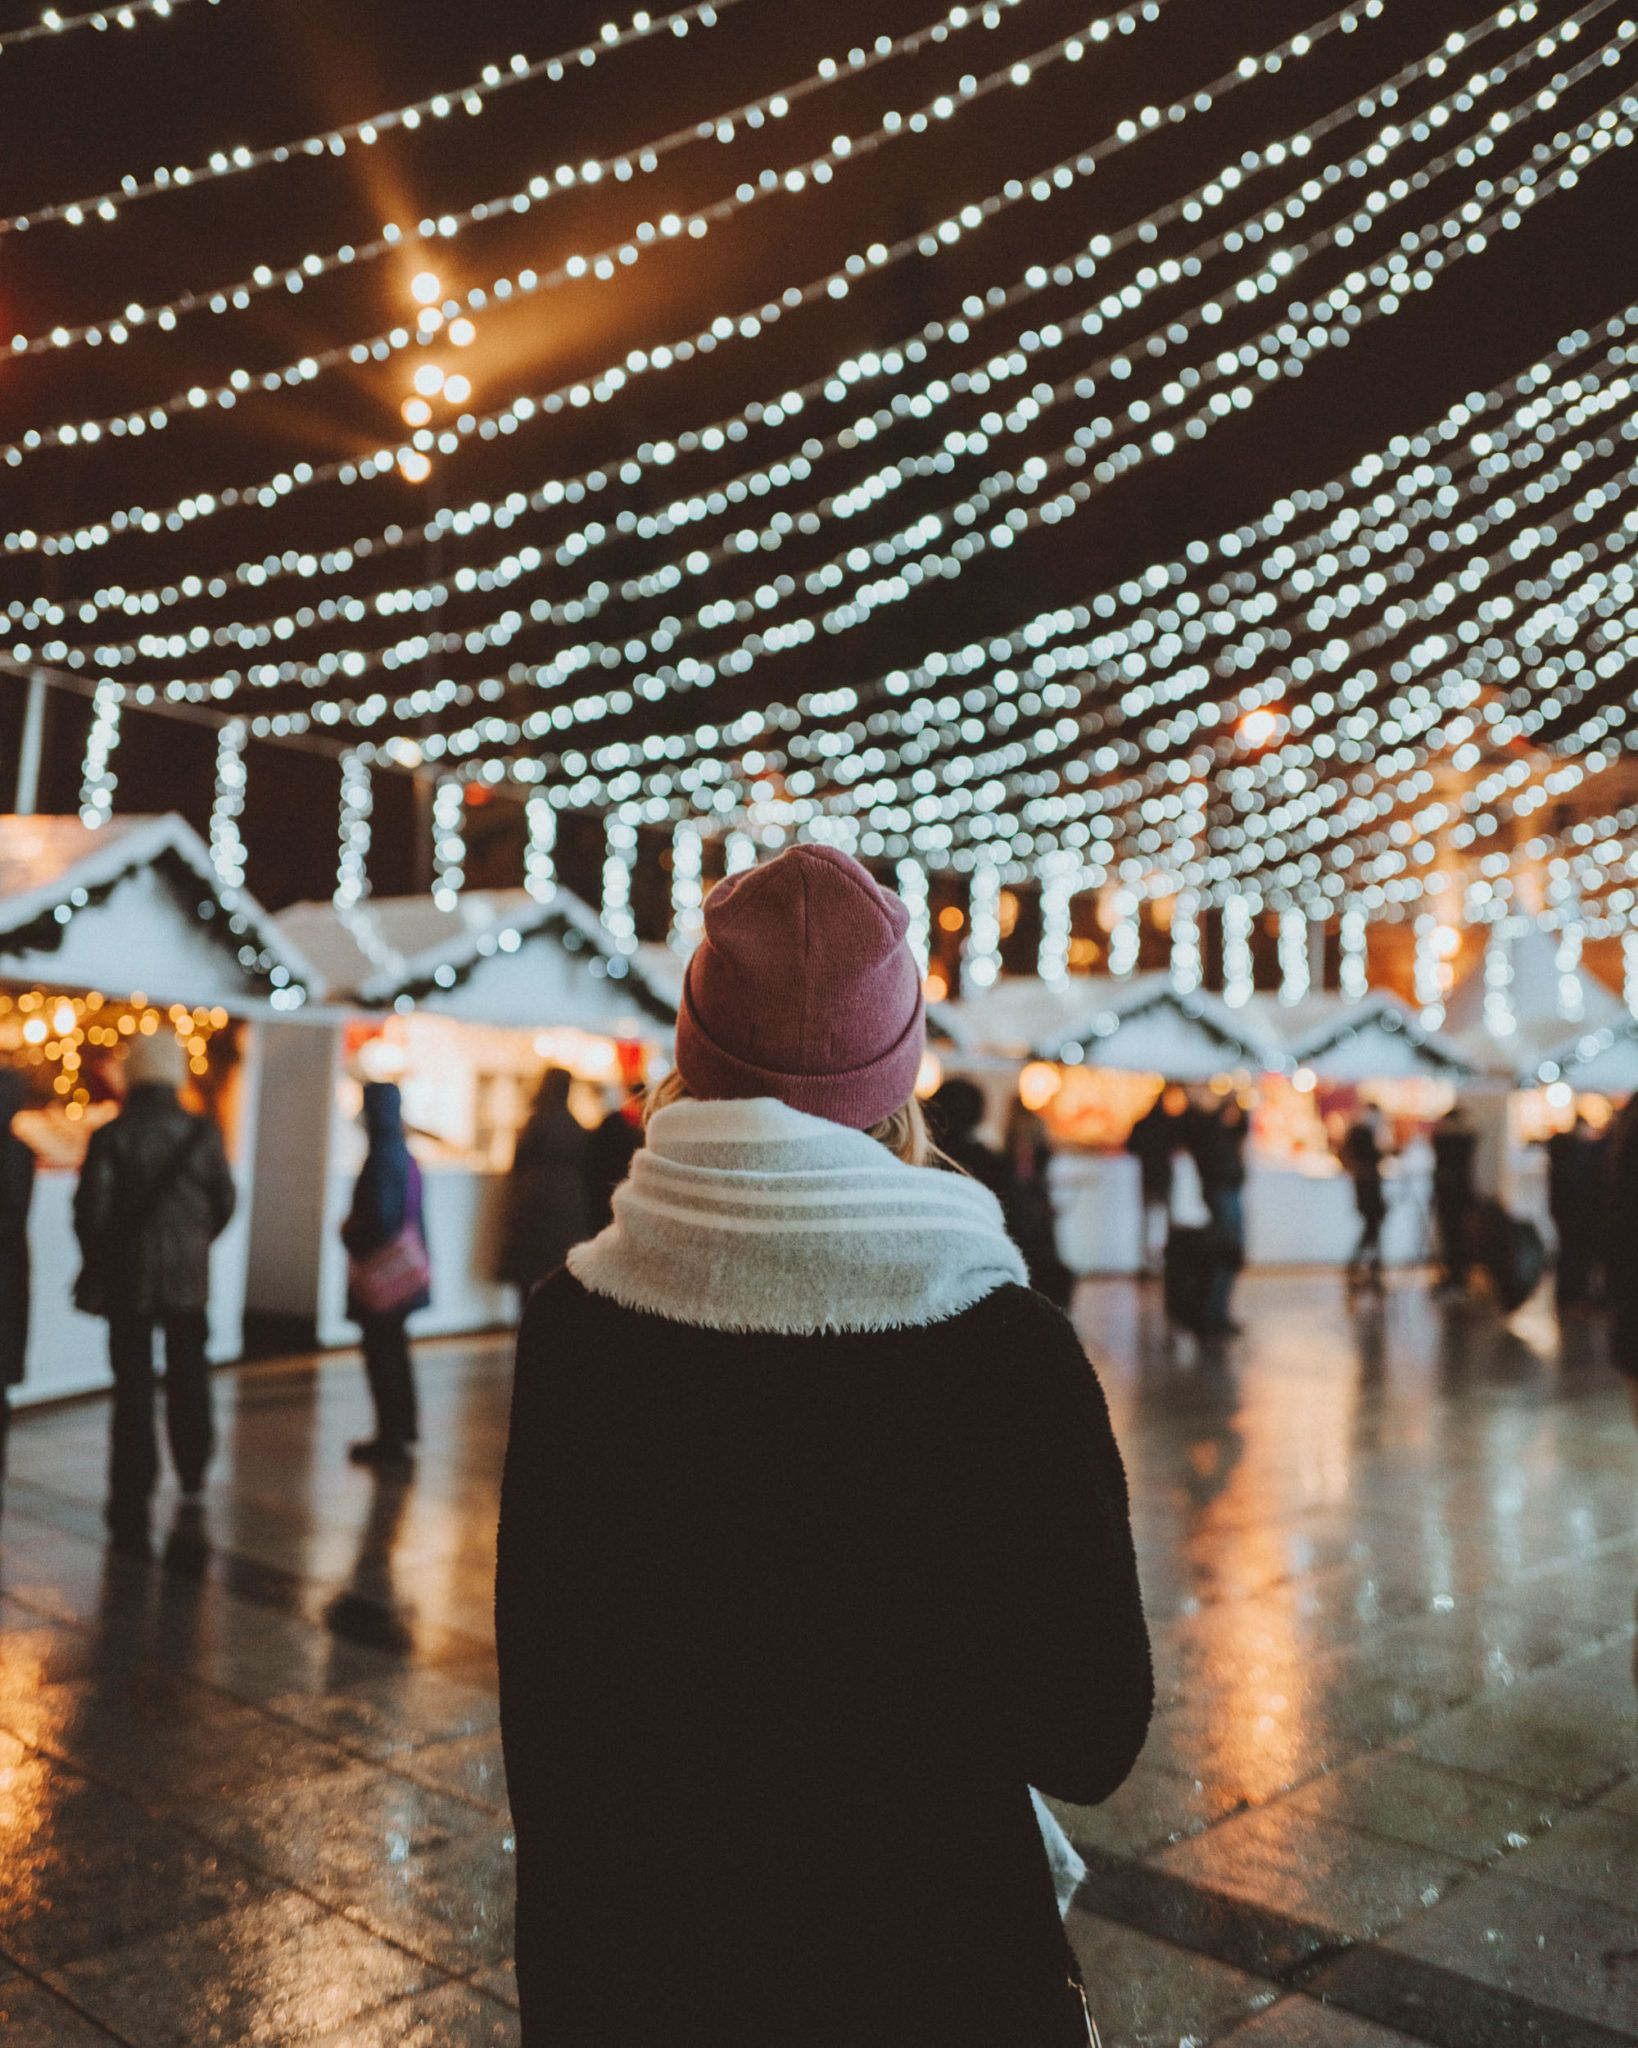 Christmas Market Tours From Usa 2020 Christmas Market Road Trip Itinerary: Estonia, Latvia, Lithuania